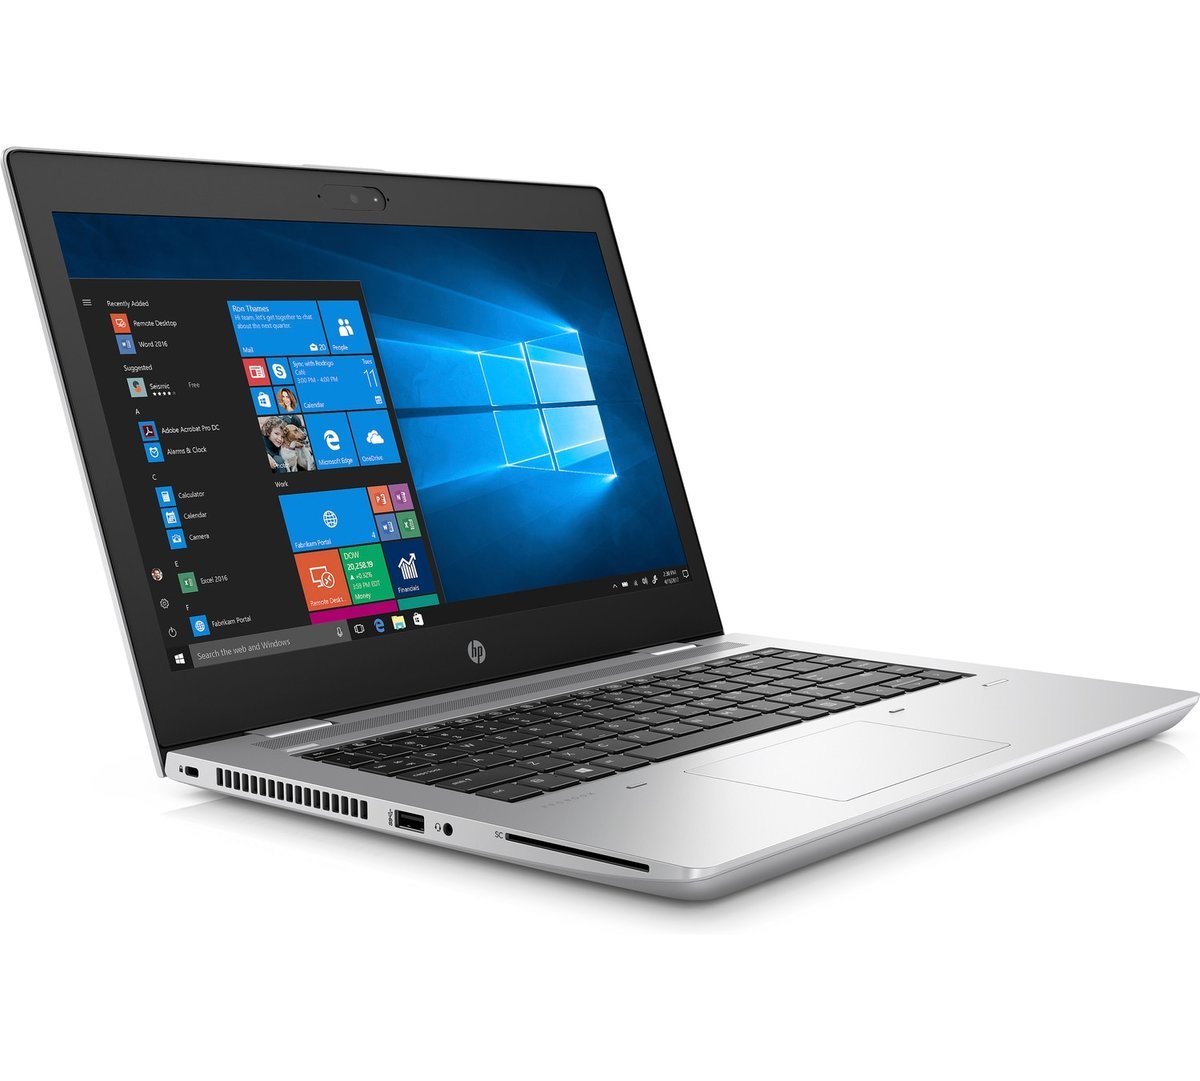 "HP ProBook 640 G4 - 14"" - Core i5 7200U - 8 GB RAM - 256 GB SSD - US - 3XJ75UT#ABA - Notebook Computers - CDW.com"